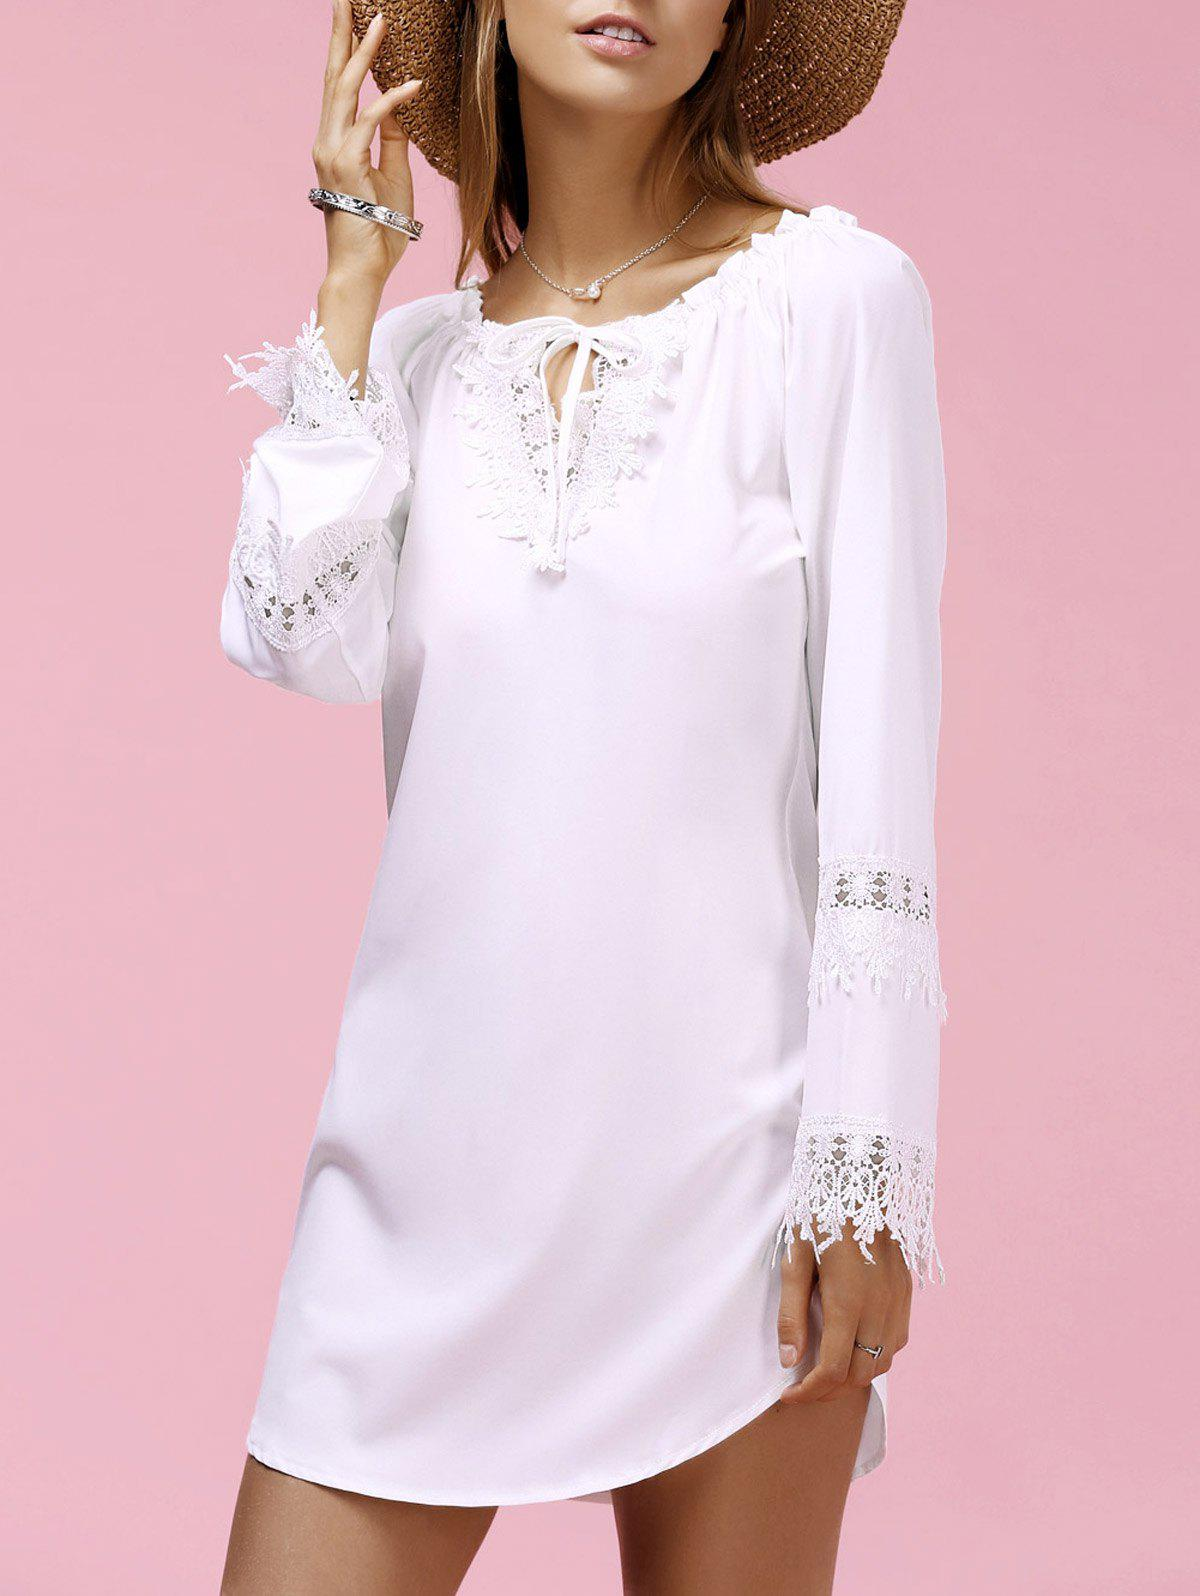 Refreshing Jewel Neck Lace Spliced Long Sleeve Dress For Women - WHITE M